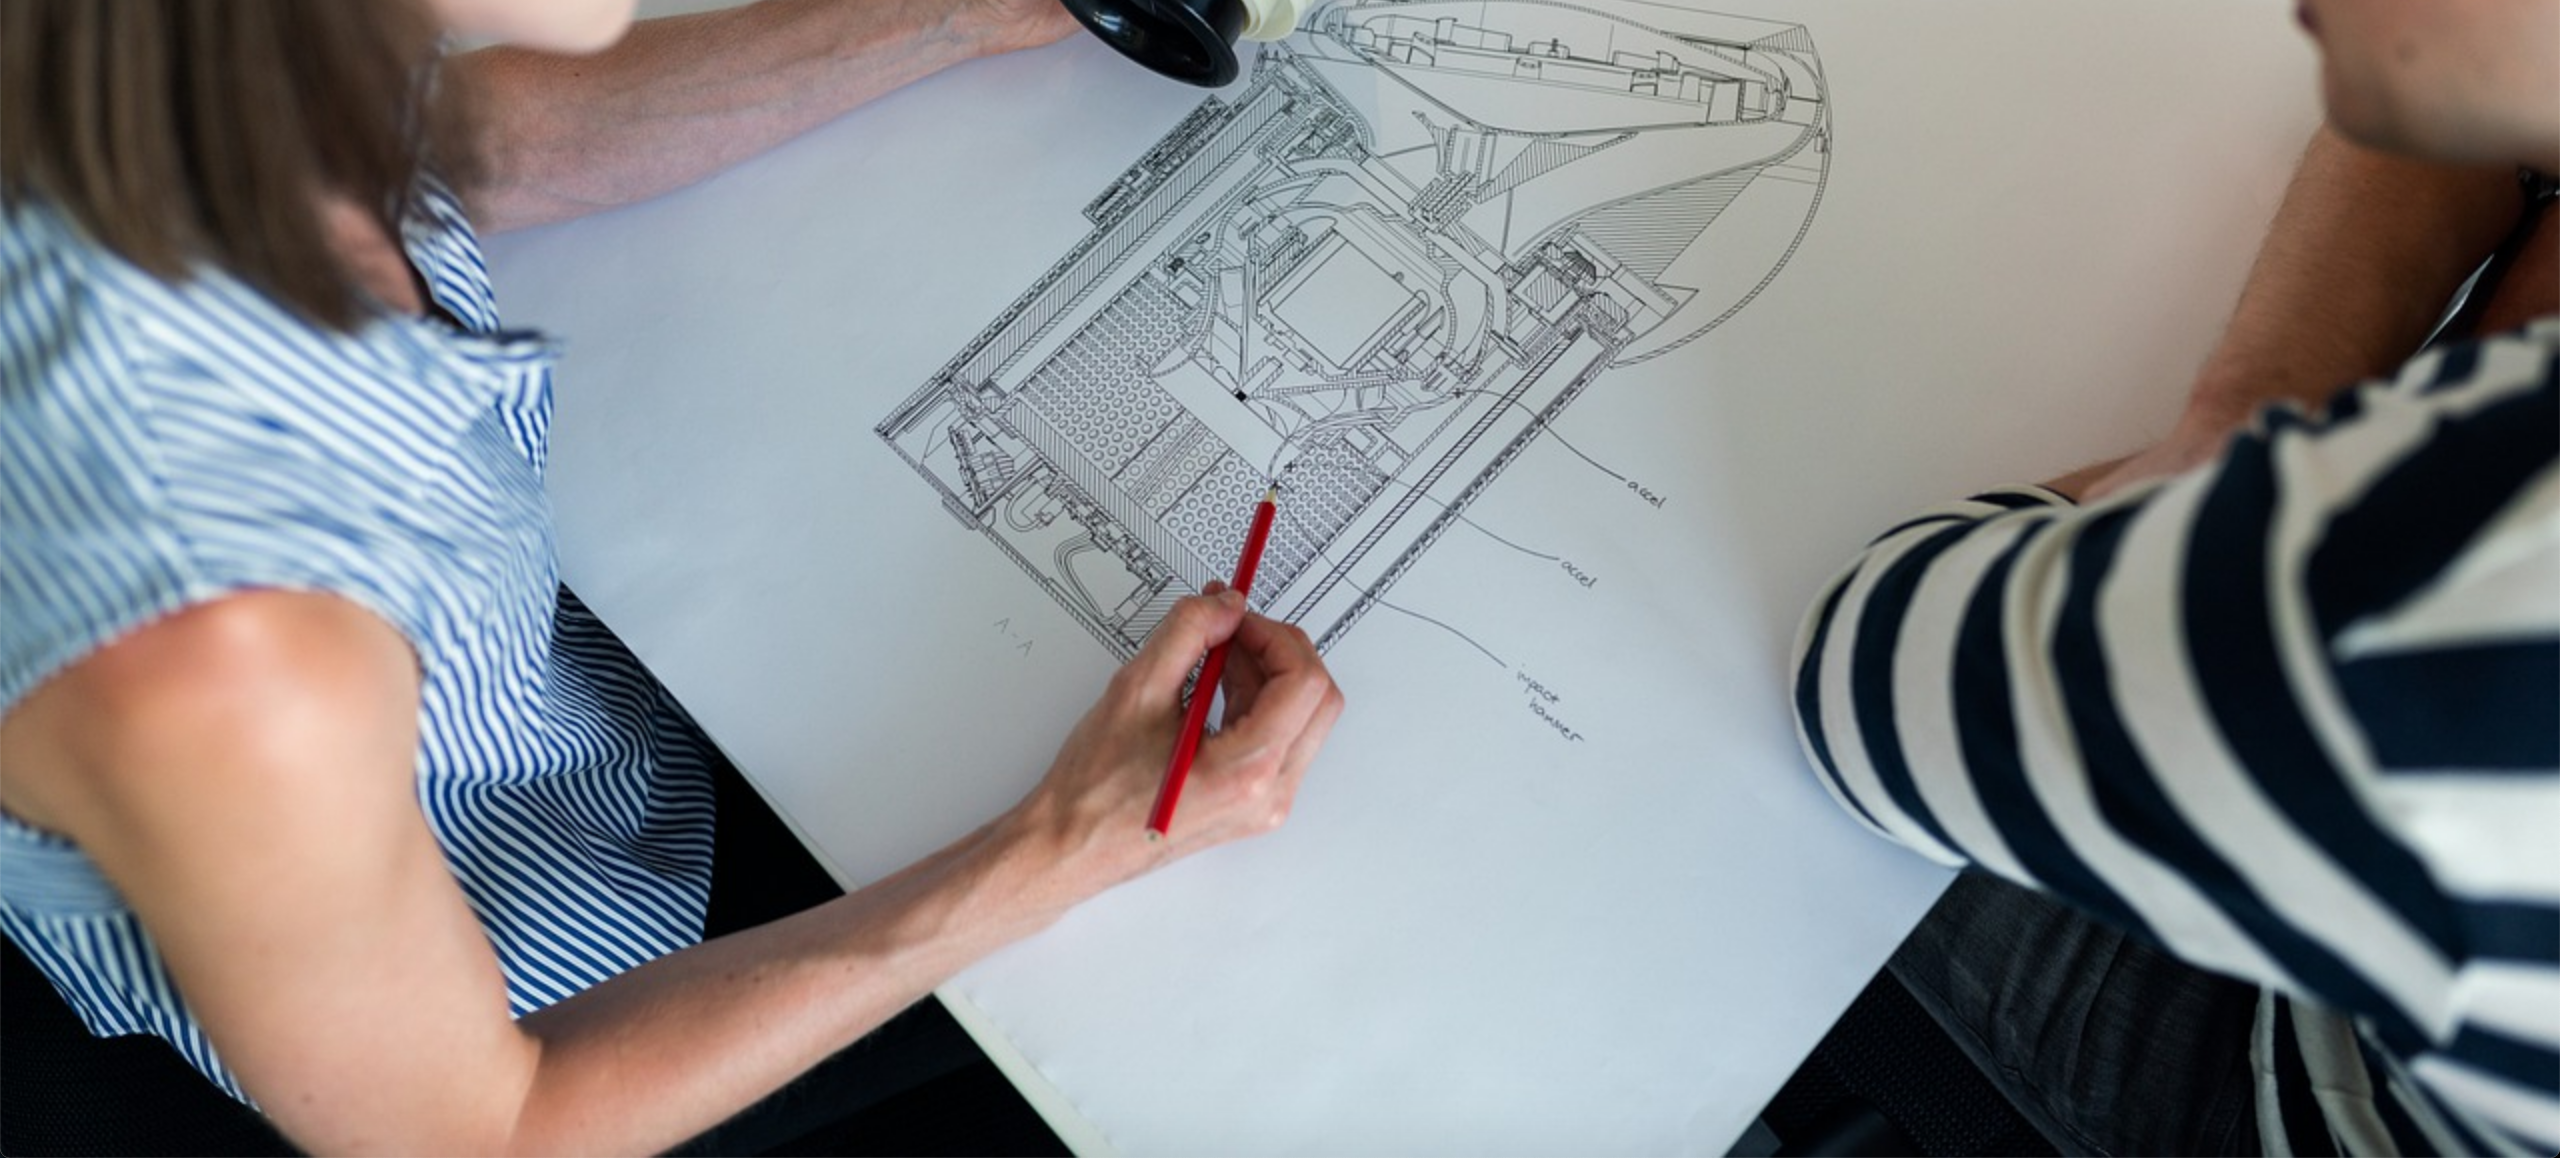 Advice on how to create quality architectural drawings